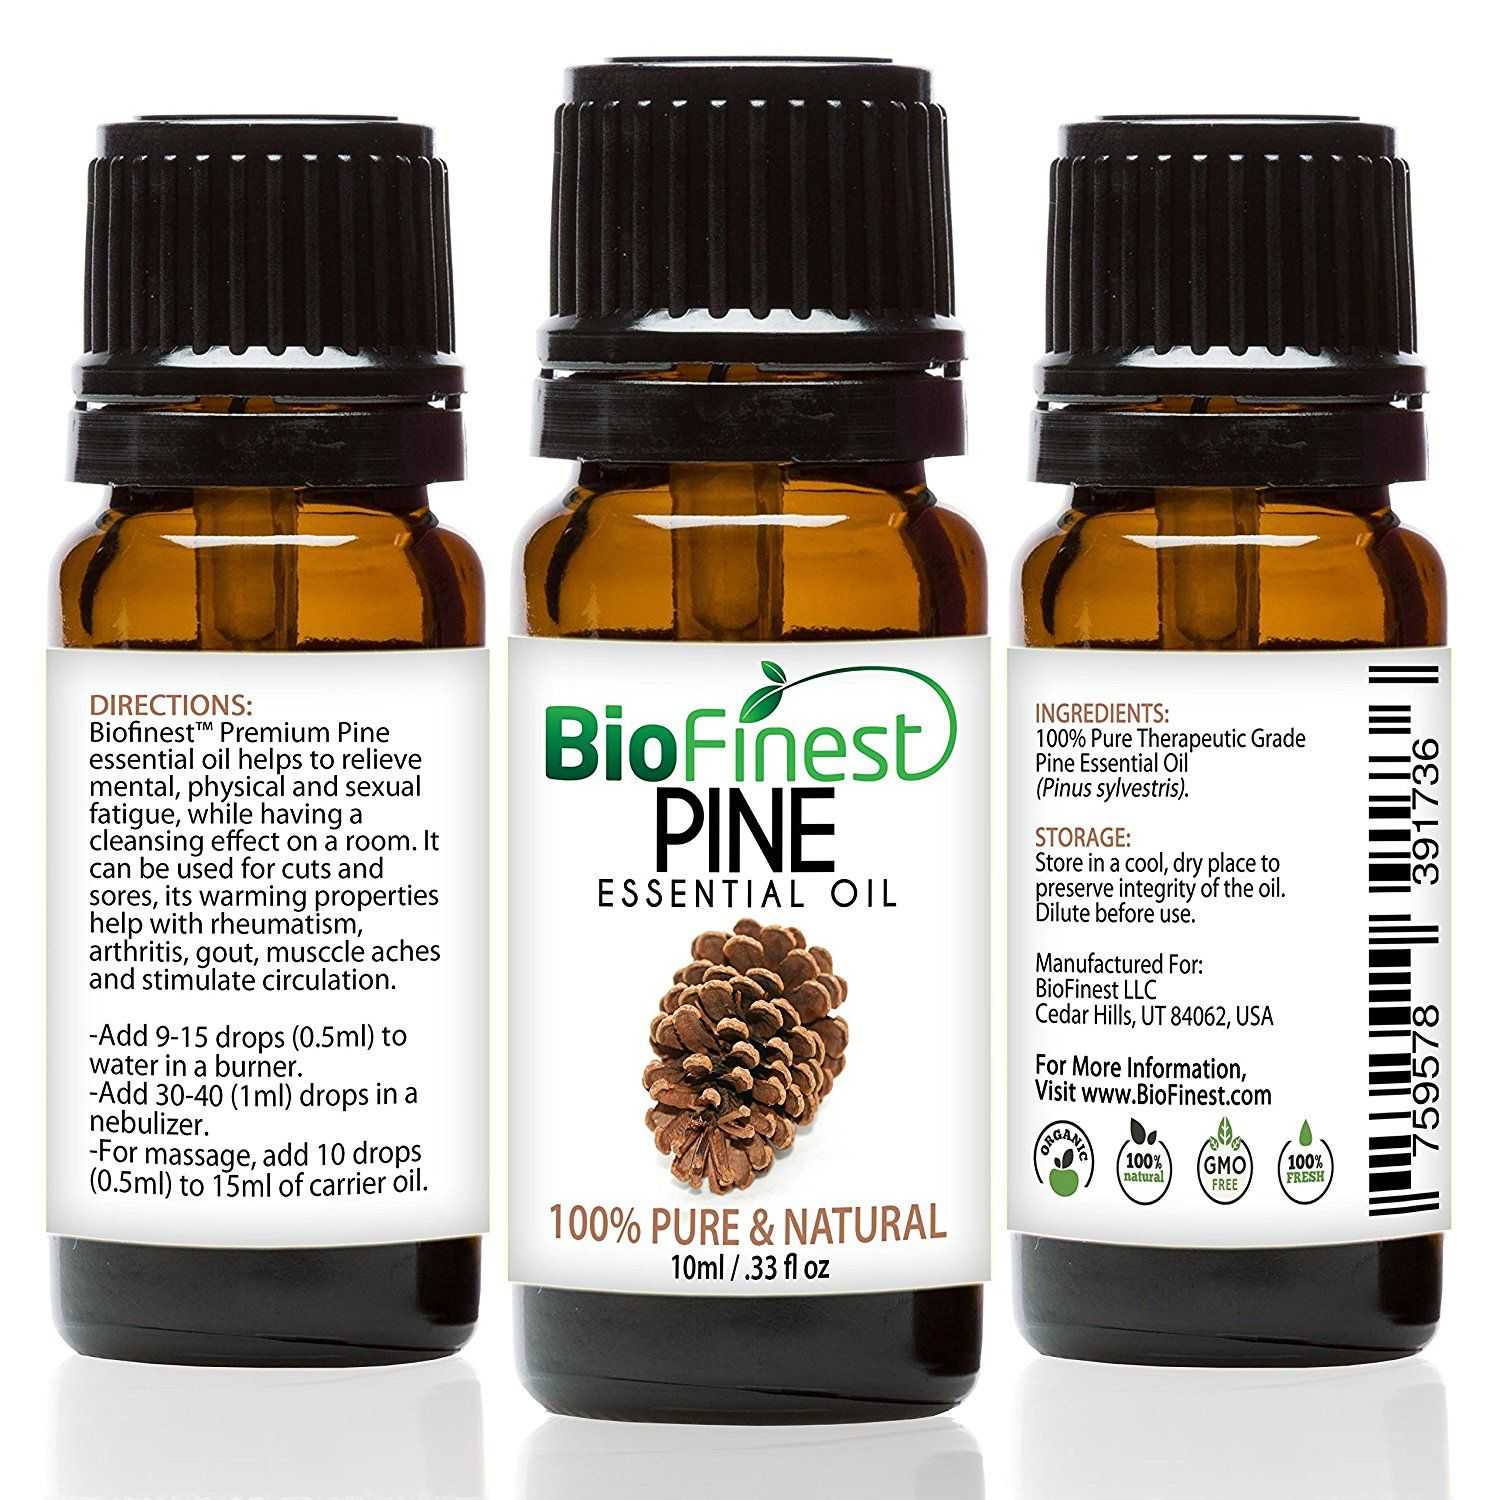 BioFinest Camphor Oil   Pure Camphor Essential Oil   Premium Quality    Therapeutic Grade   Best For Aromatherapy   FREE E Book U003e See This Great  Image ...